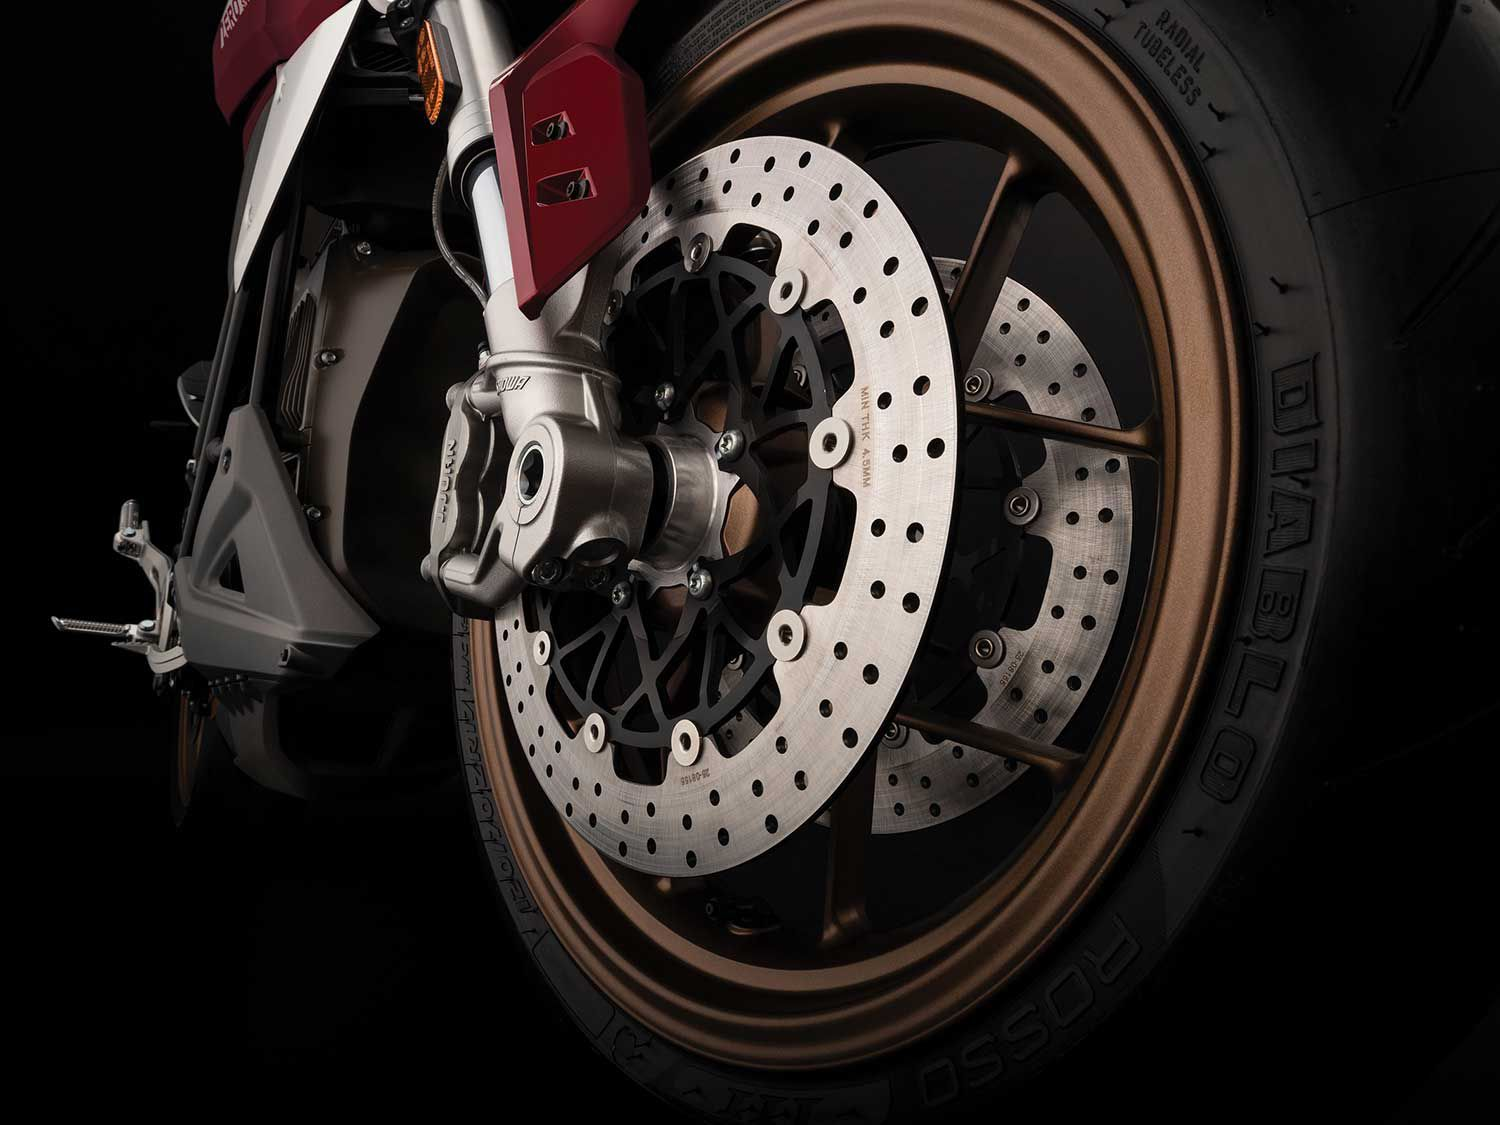 The SR/F comes equipped with a J.Juan dual radial front brake system and enhanced by Bosch Motorcycle Stability Control.